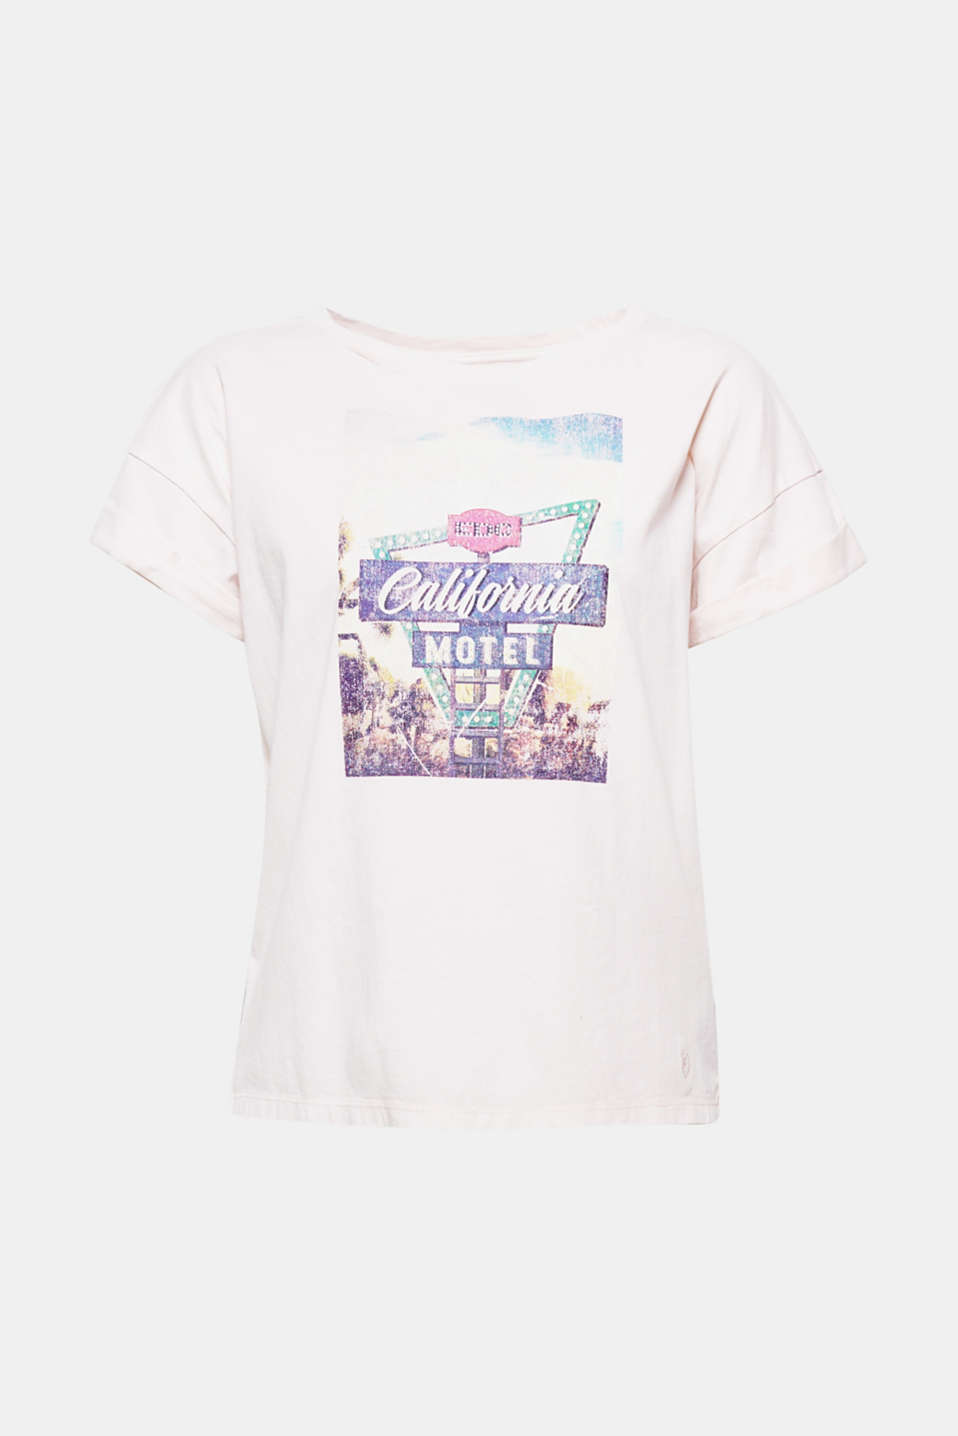 The colourful front print makes this boxy T-shirt made of soft cotton a summery free time fave!